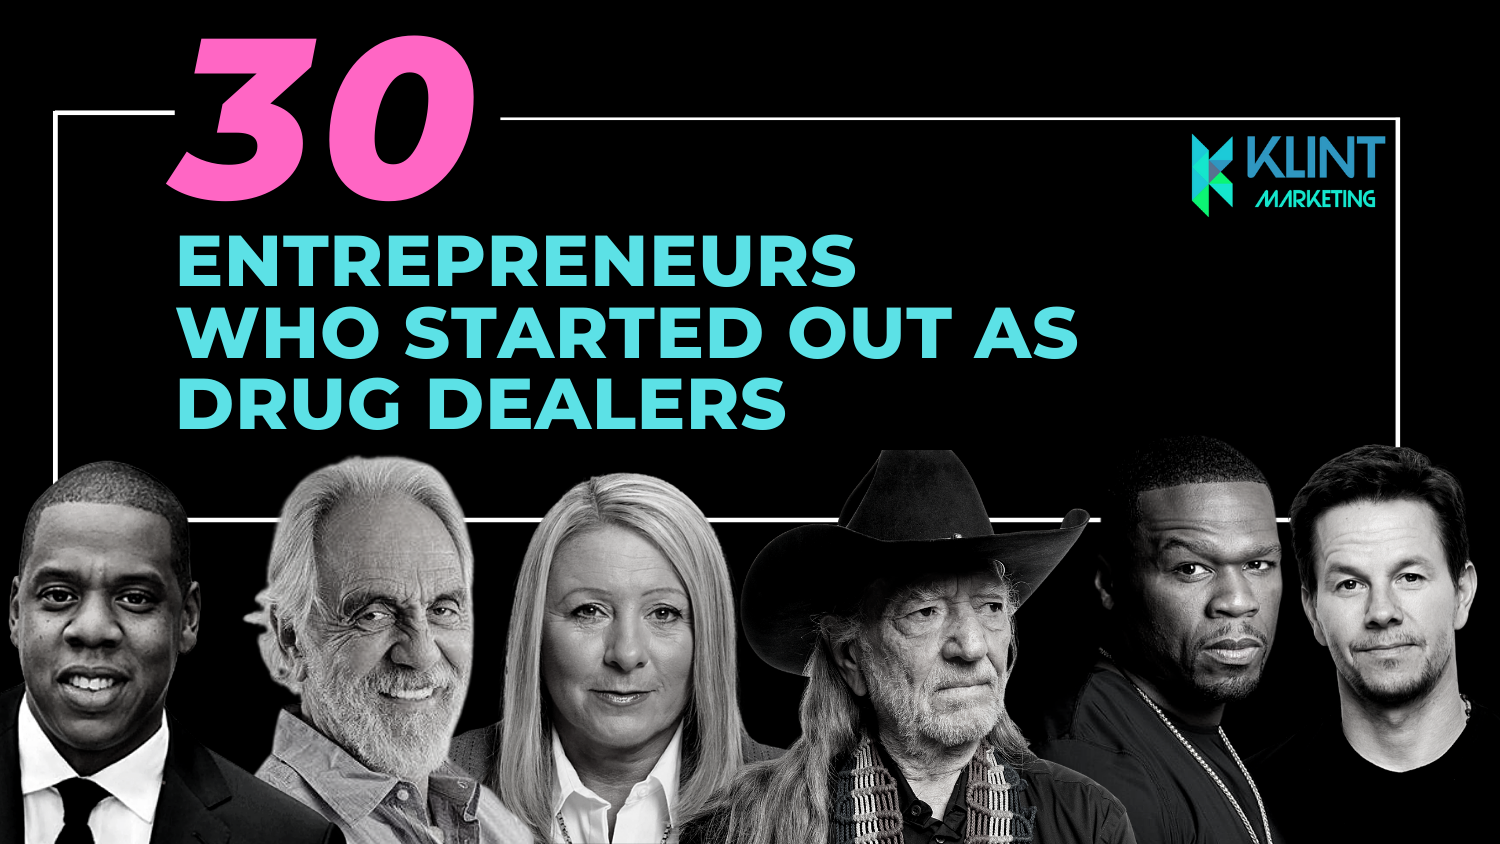 30 Entrepreneurs who started out as drug dealers